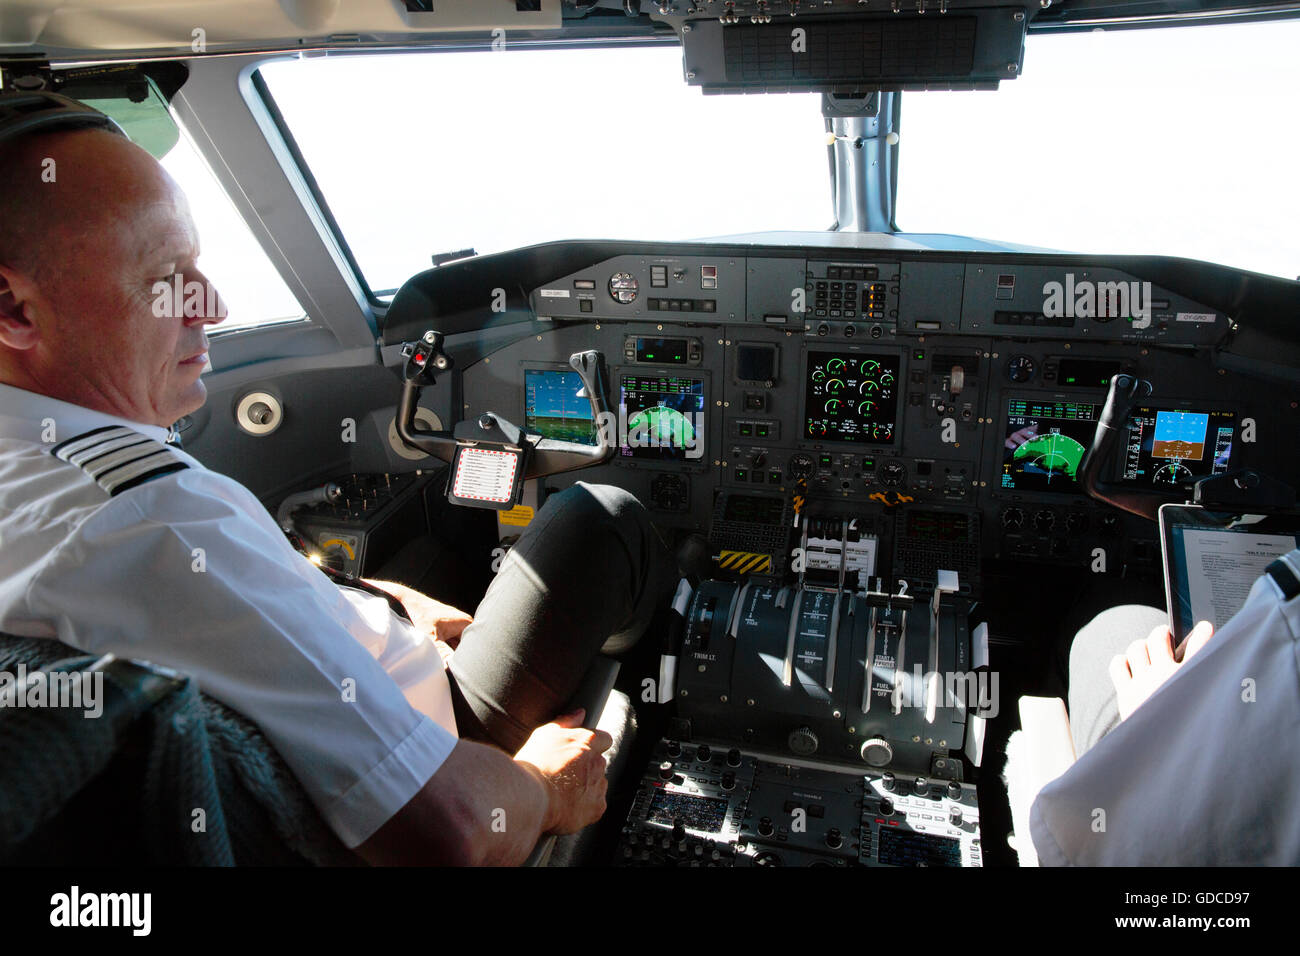 Cockpit of a Dash-8 en route from Reykavik to Ilulissat, Greenland - Stock Image